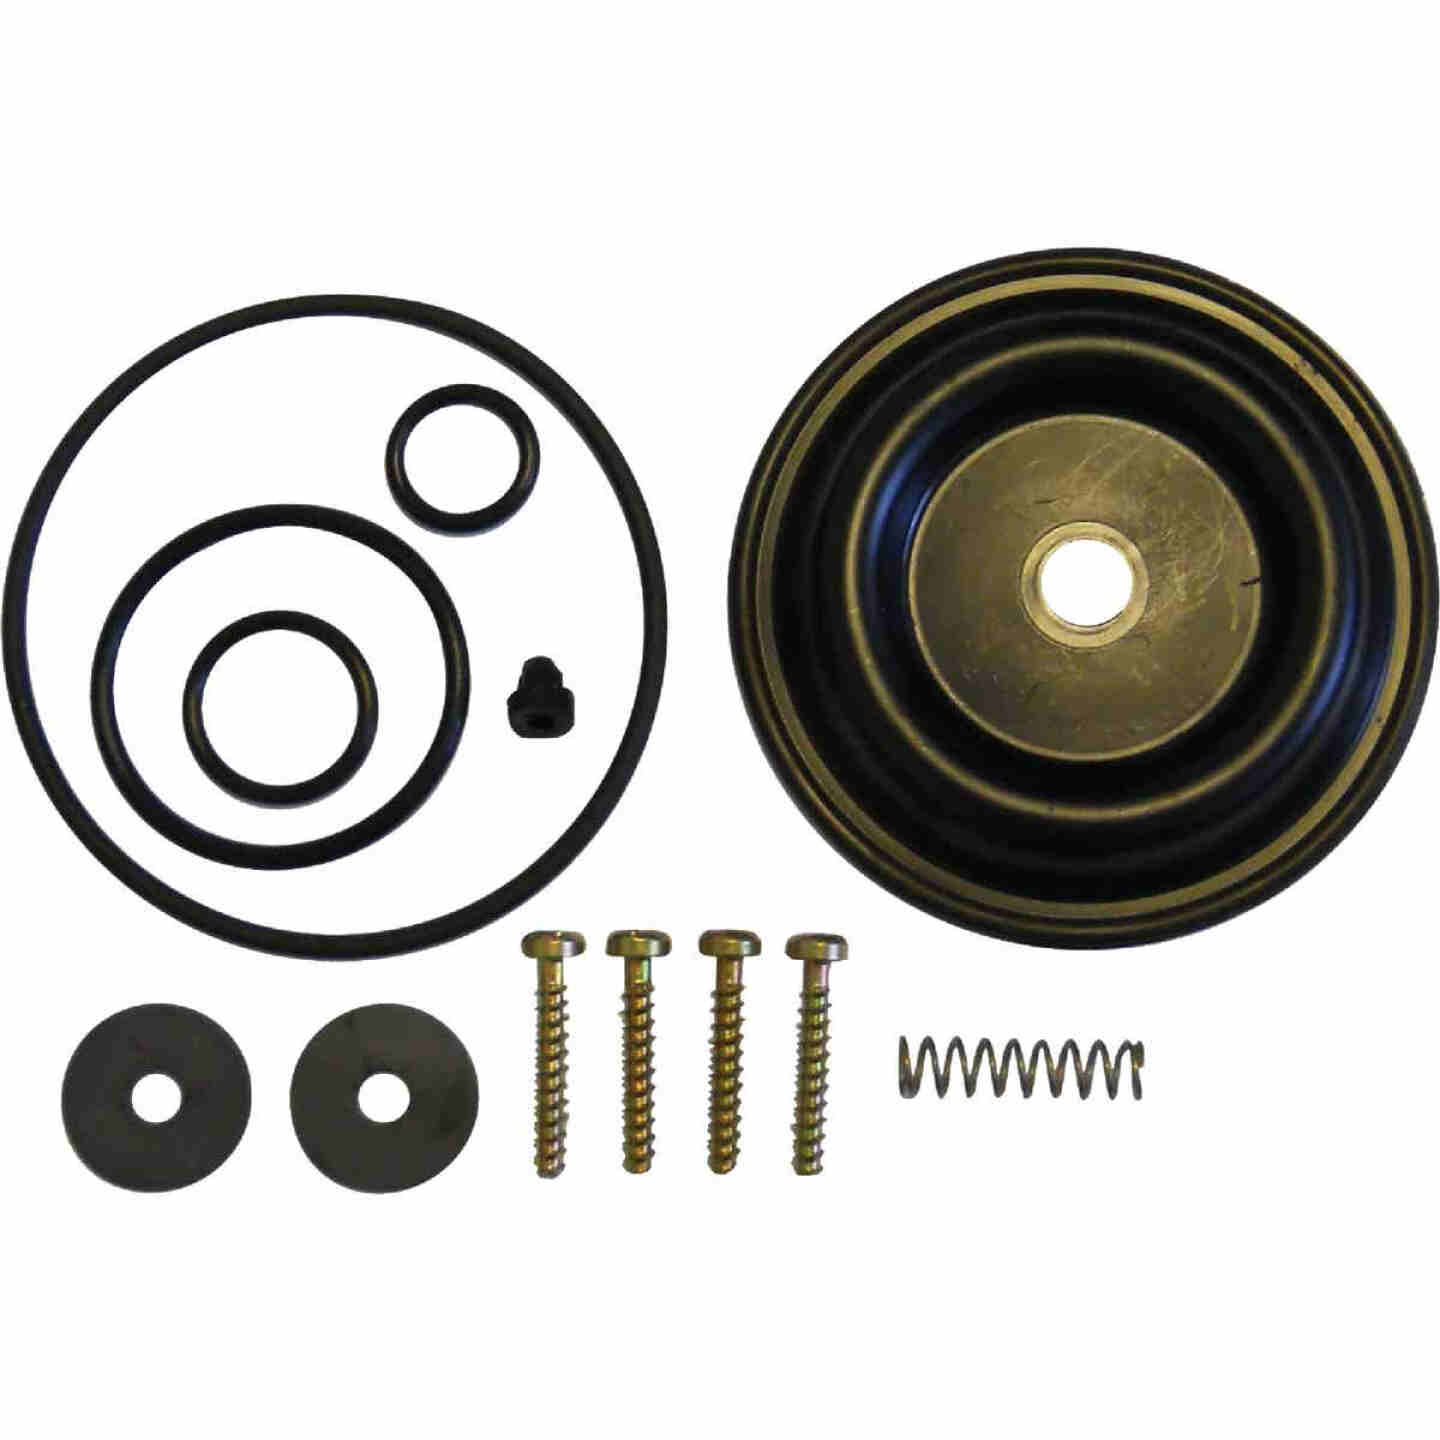 Solo Diaphragm Pump Repair Kit Image 1